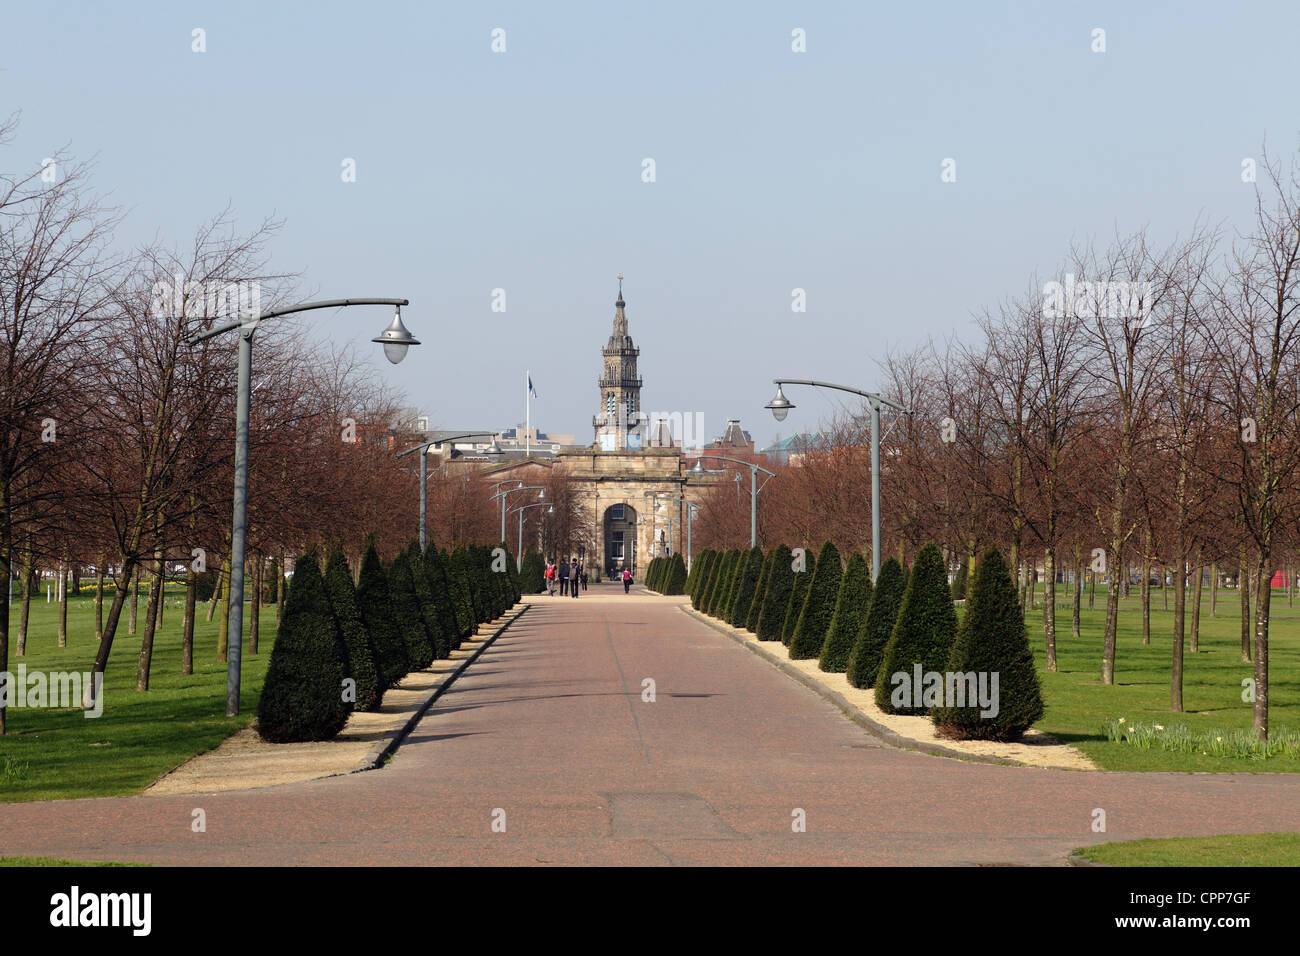 View looking west through Glasgow Green public park to the Merchant City, Scotland, UK - Stock Image